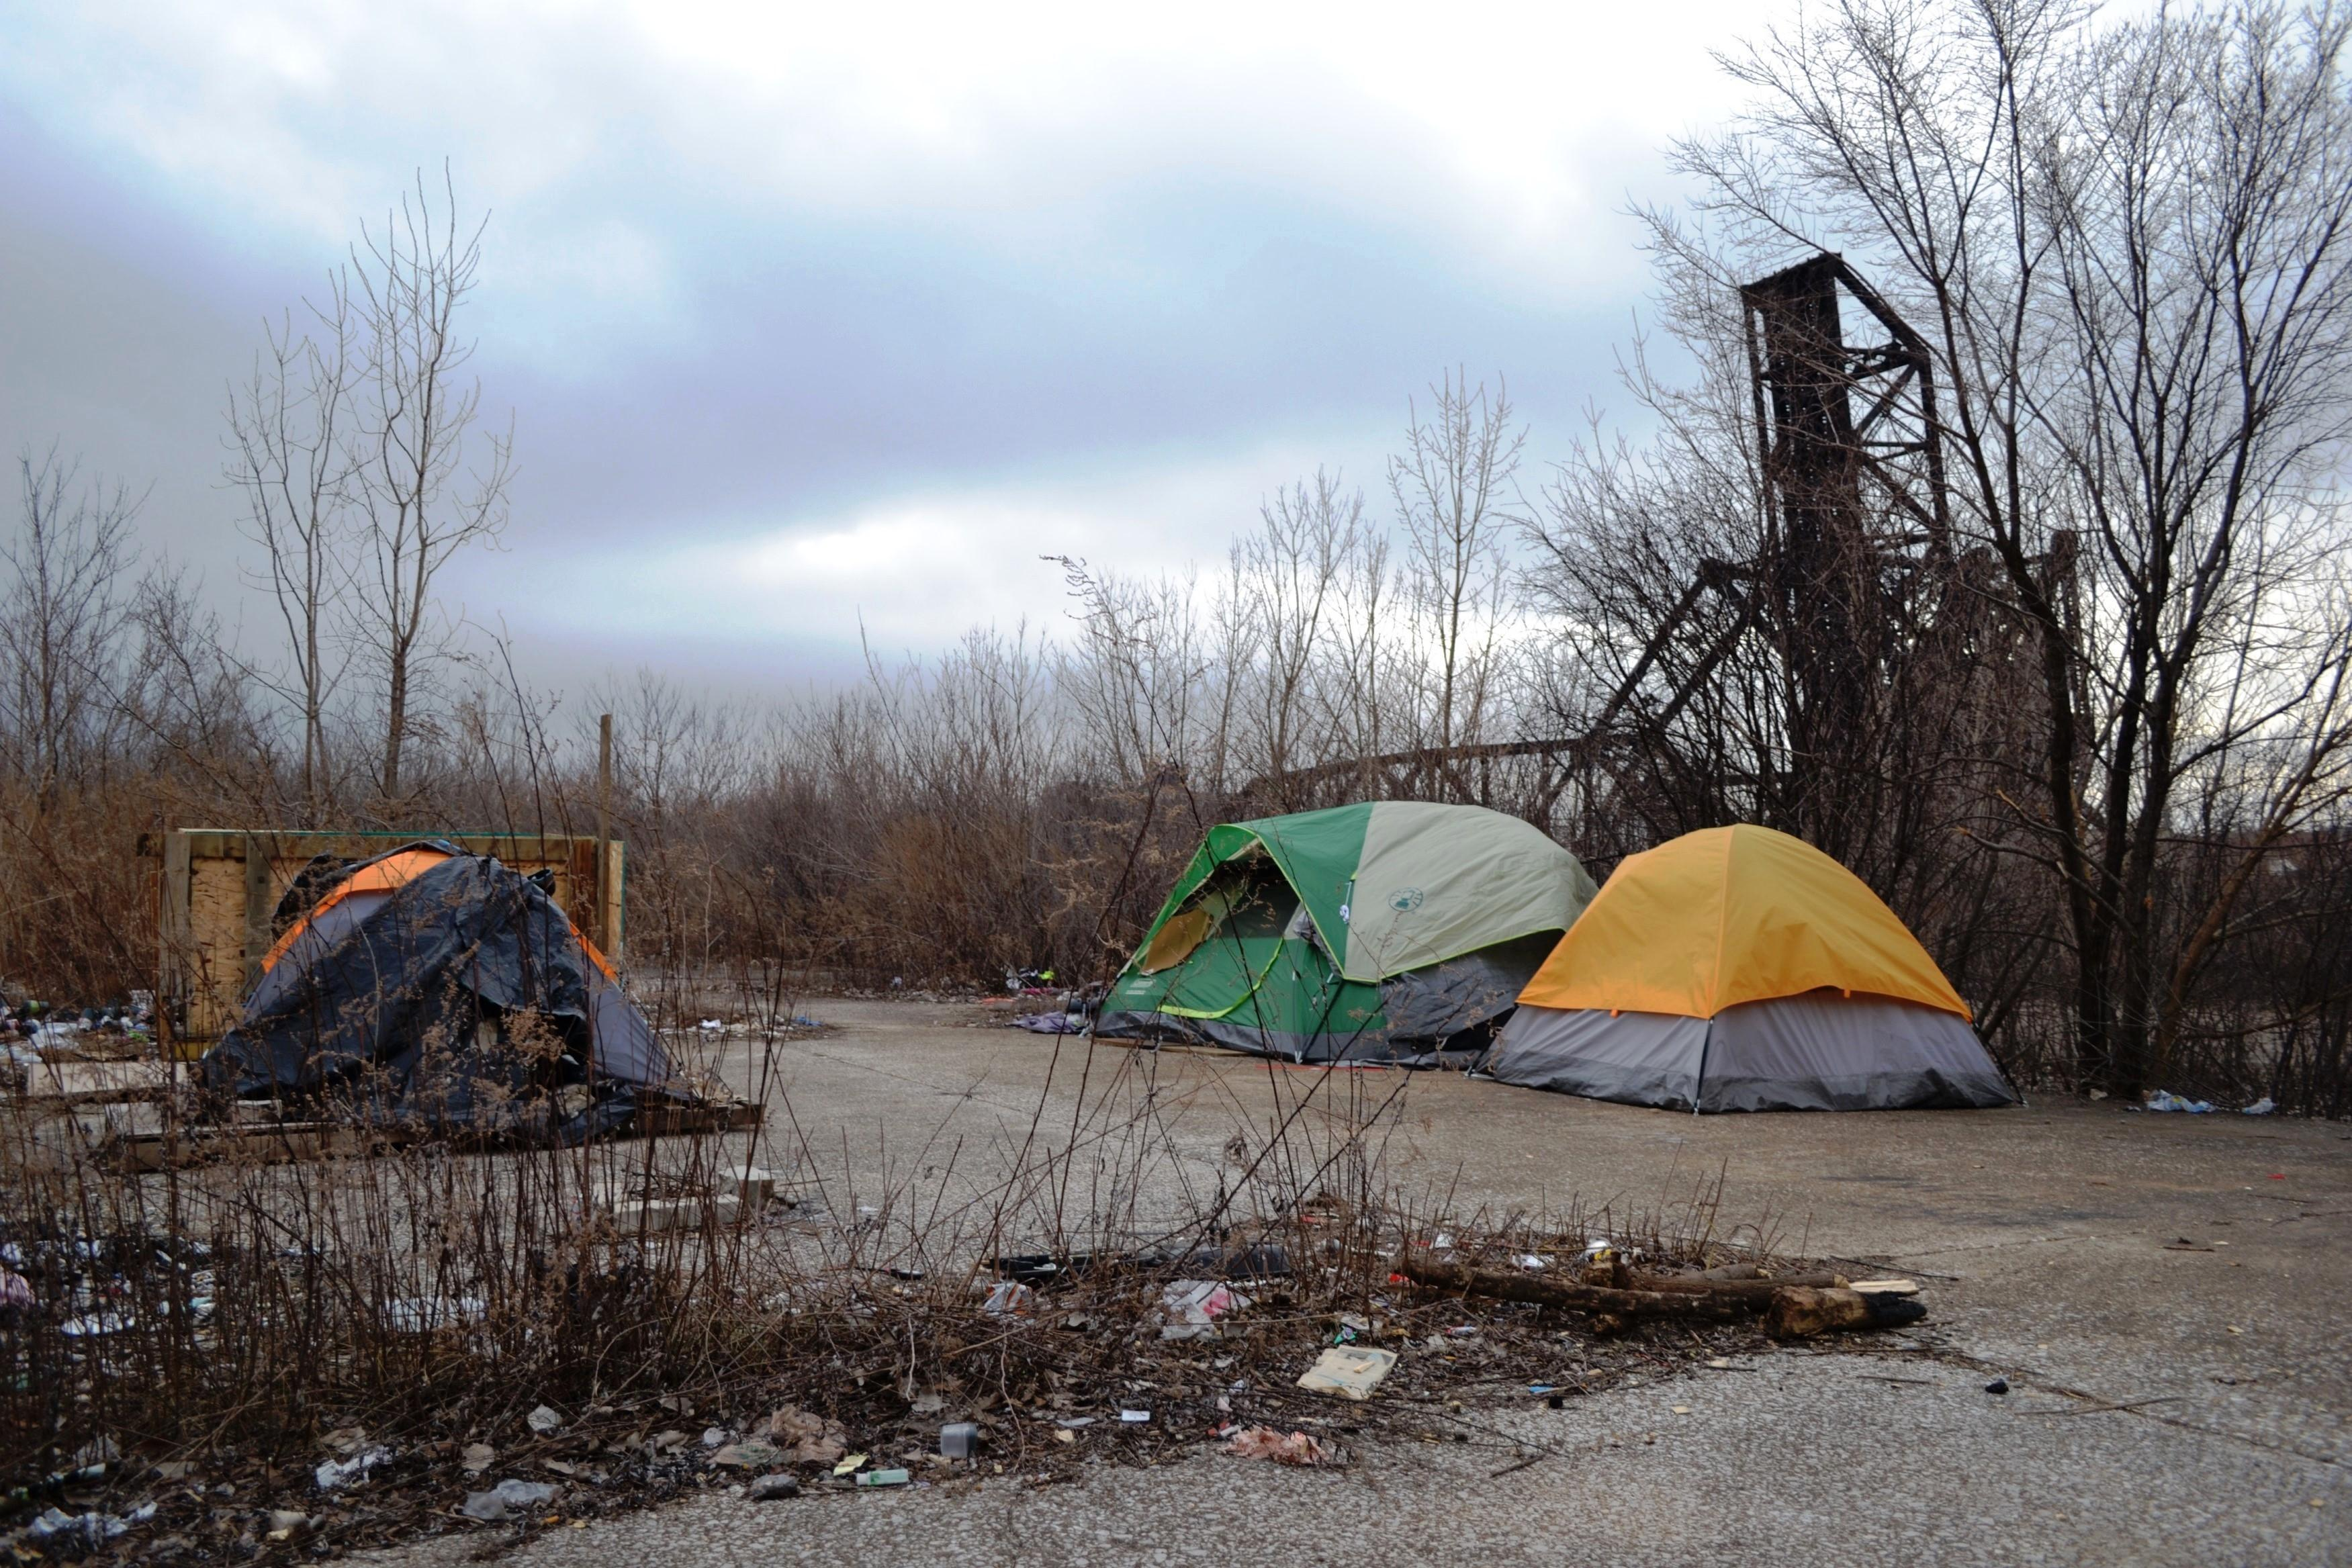 Some sites had signs of recent activity like identification cards neatly placed on a cabinet outside a tent or laundry hanging from a clothes line ... & Exploring a Tent City Along the Chicago River | Chicago Tonight | WTTW